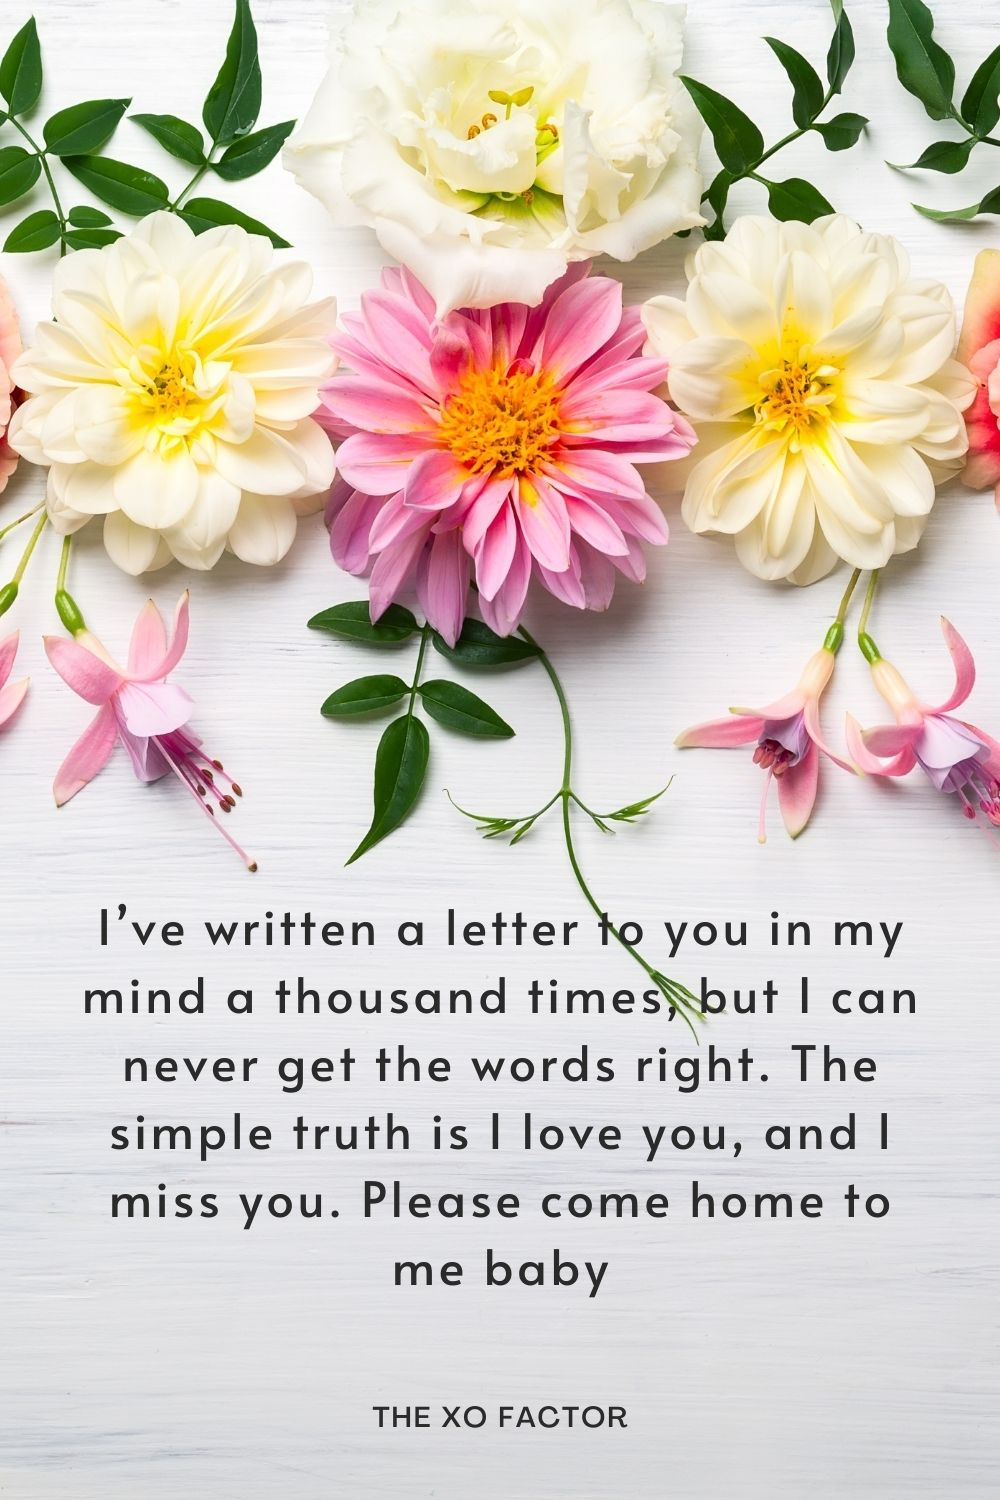 .I've written a letter to you in my mind a thousand times, but I can never get the words right. The simple truth is I love you, and I miss you. Please come home to me baby